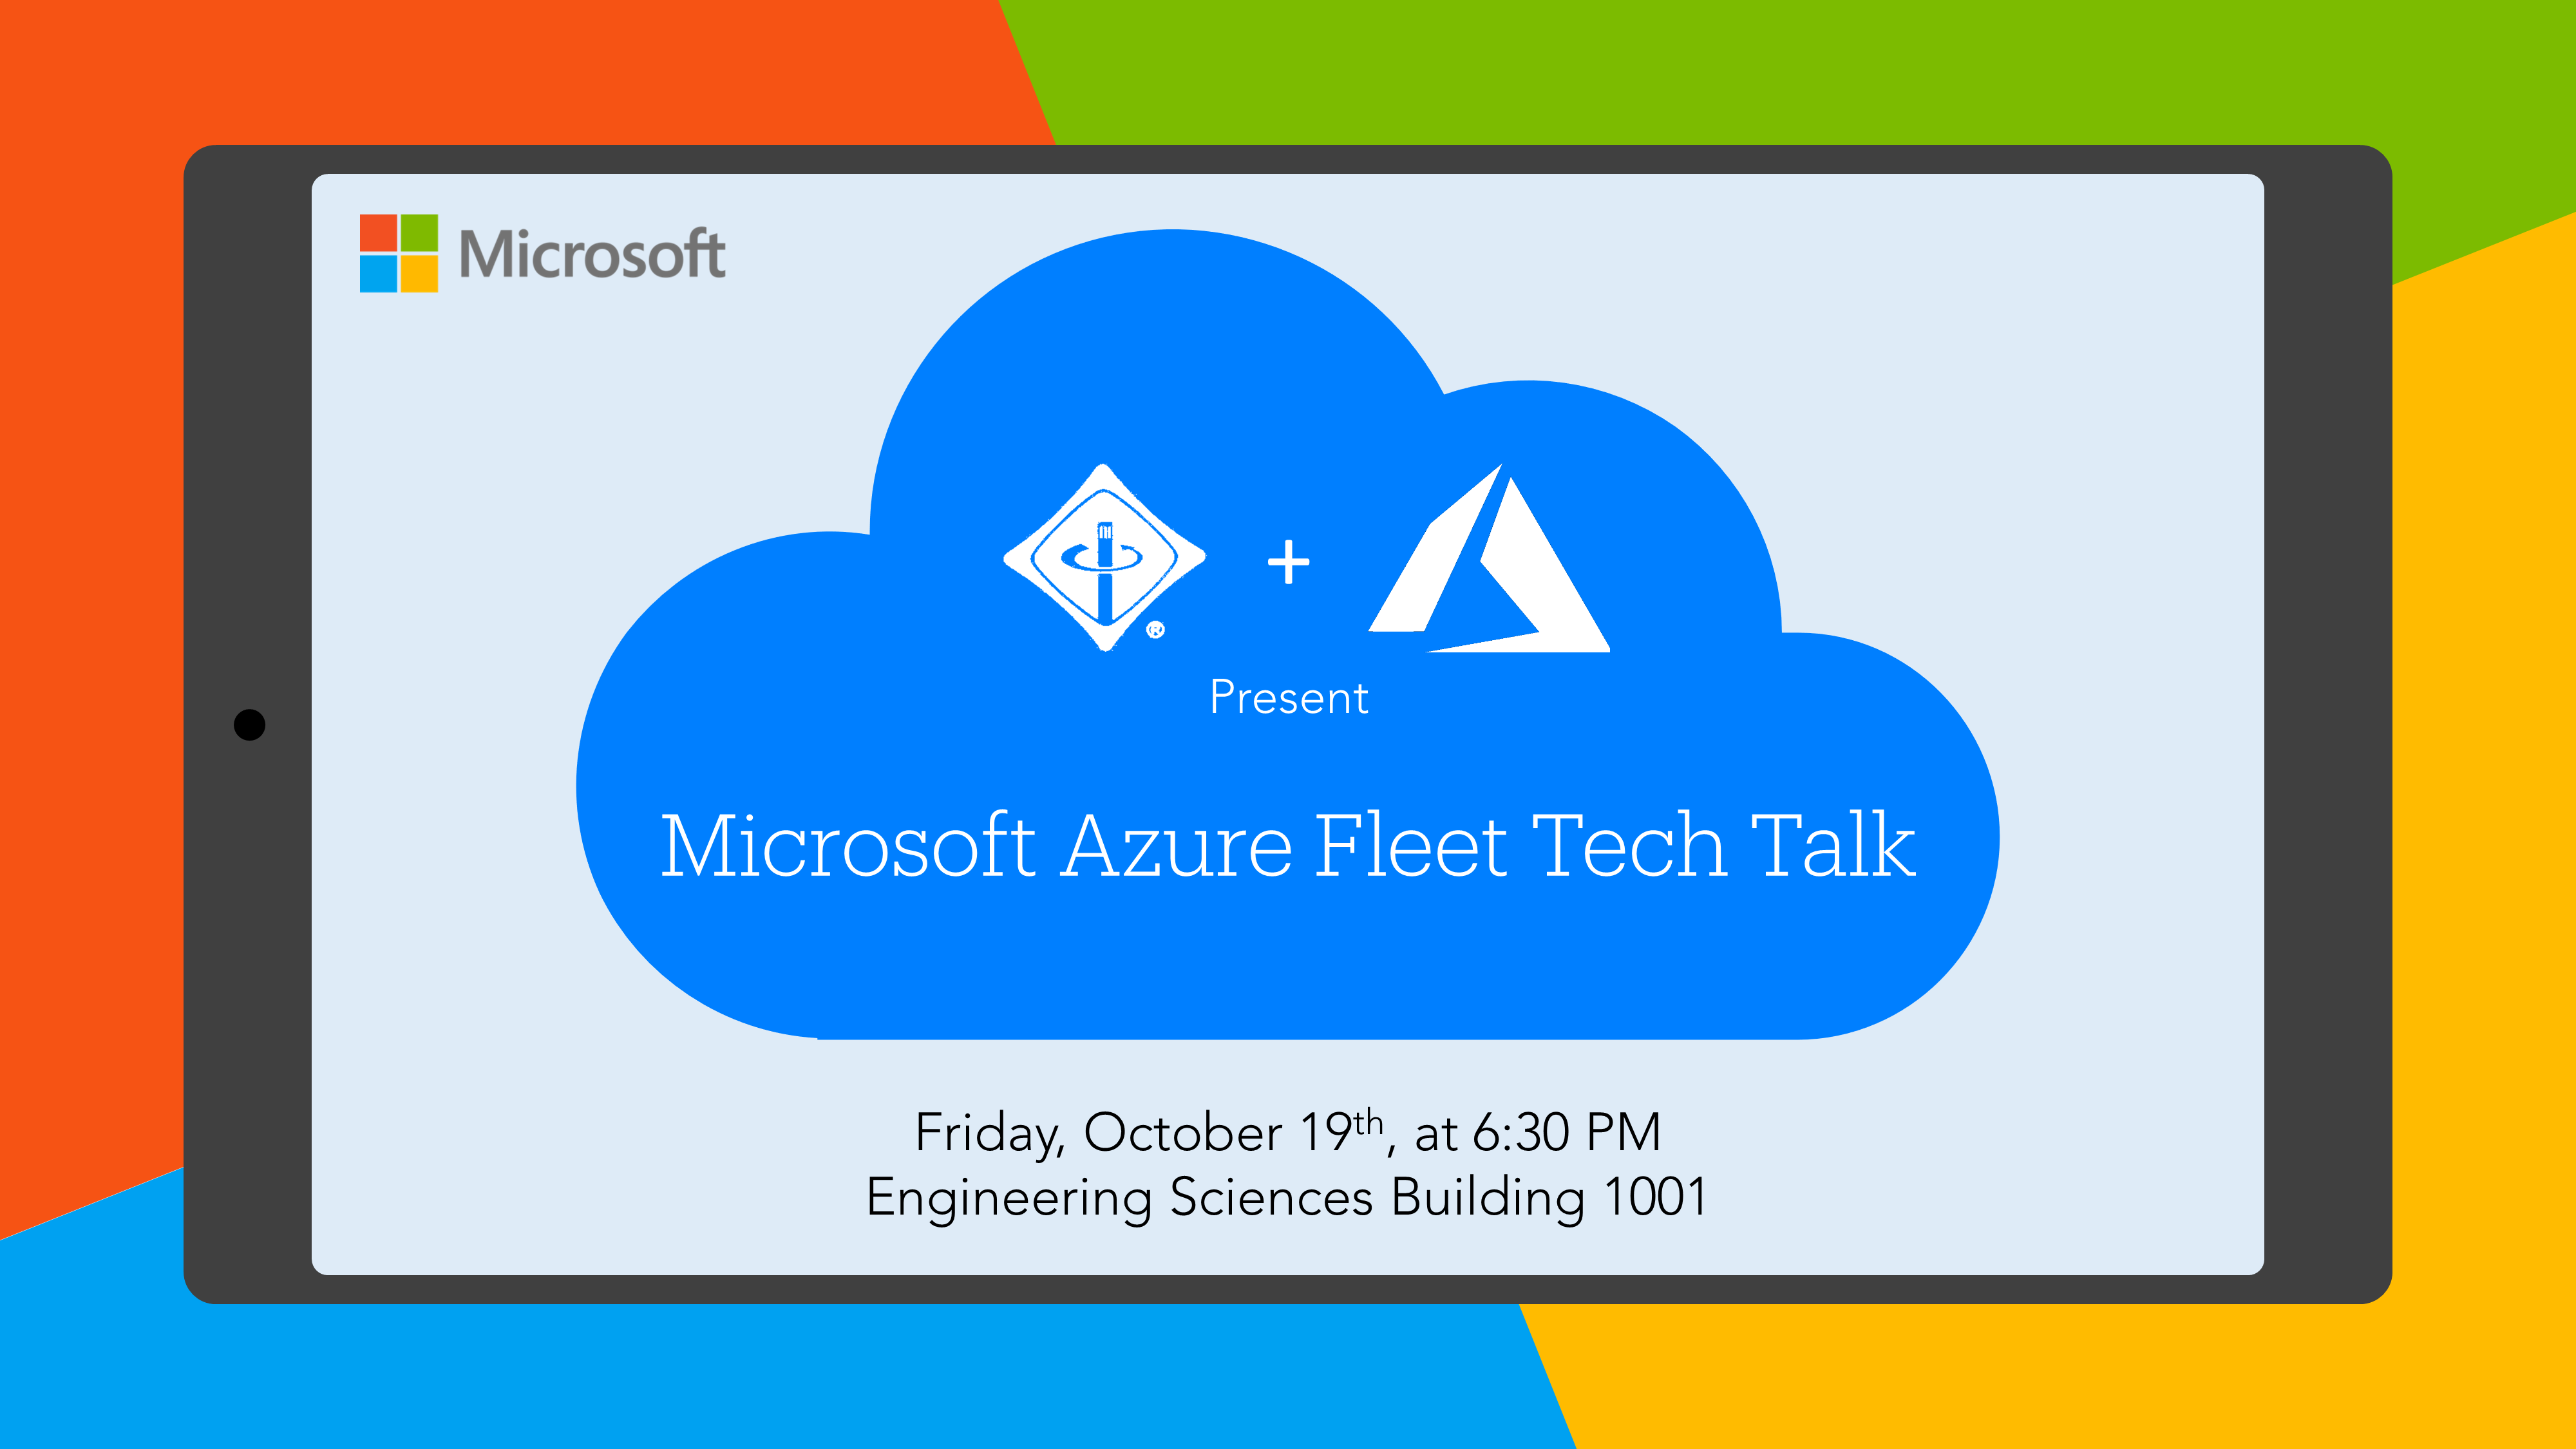 Microsoft Azure Fleet Tech Talk